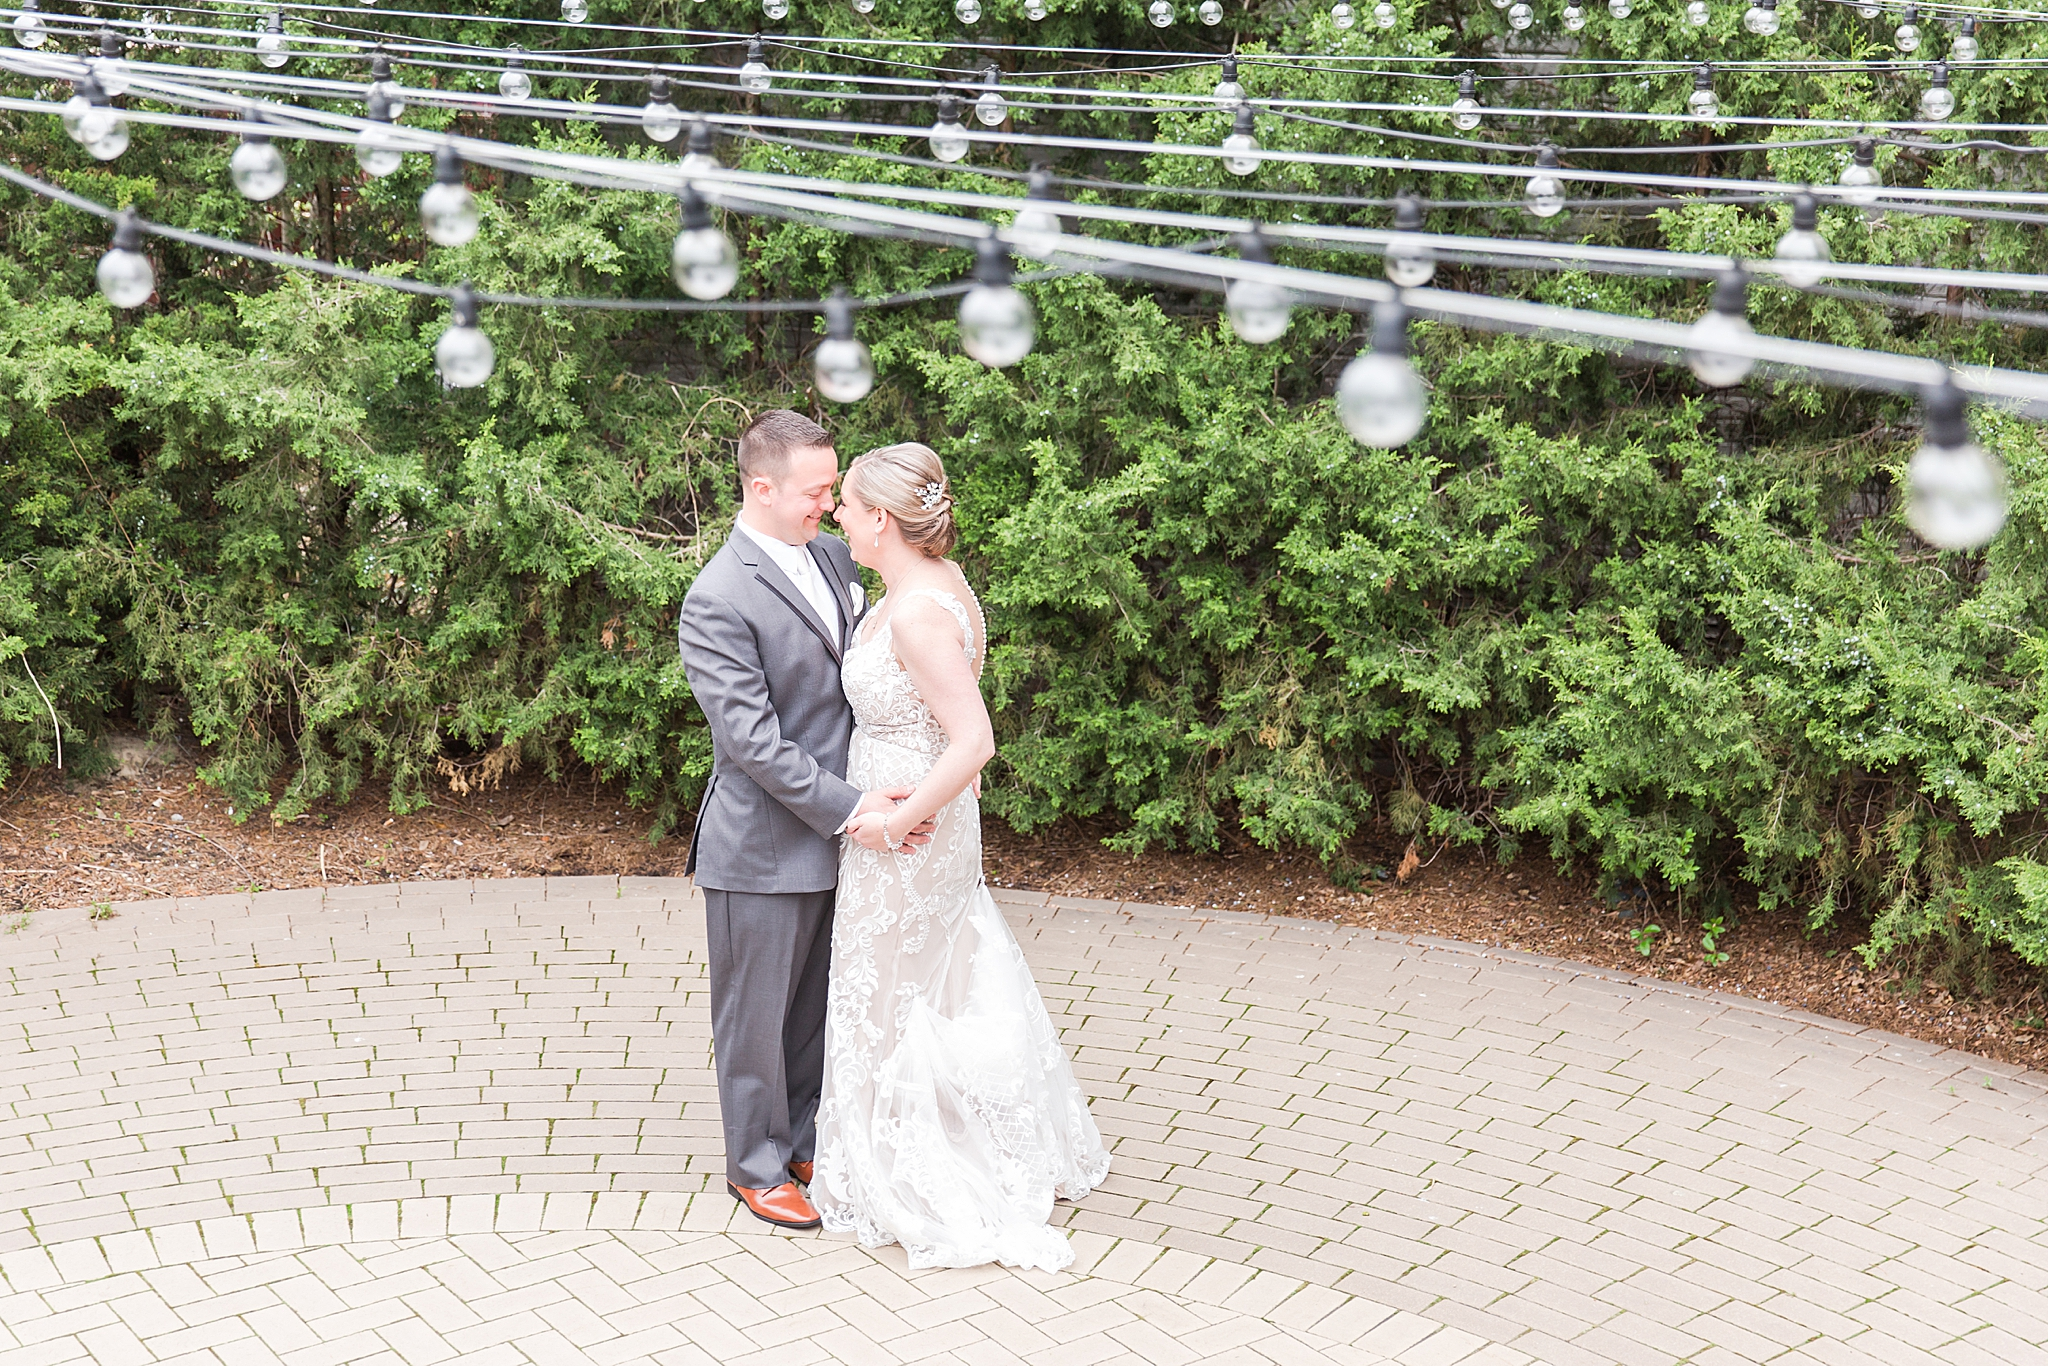 modern-romantic-wedding-photography-at-webers-in-ann-arbor-michigan-by-courtney-carolyn-photography_0026.jpg